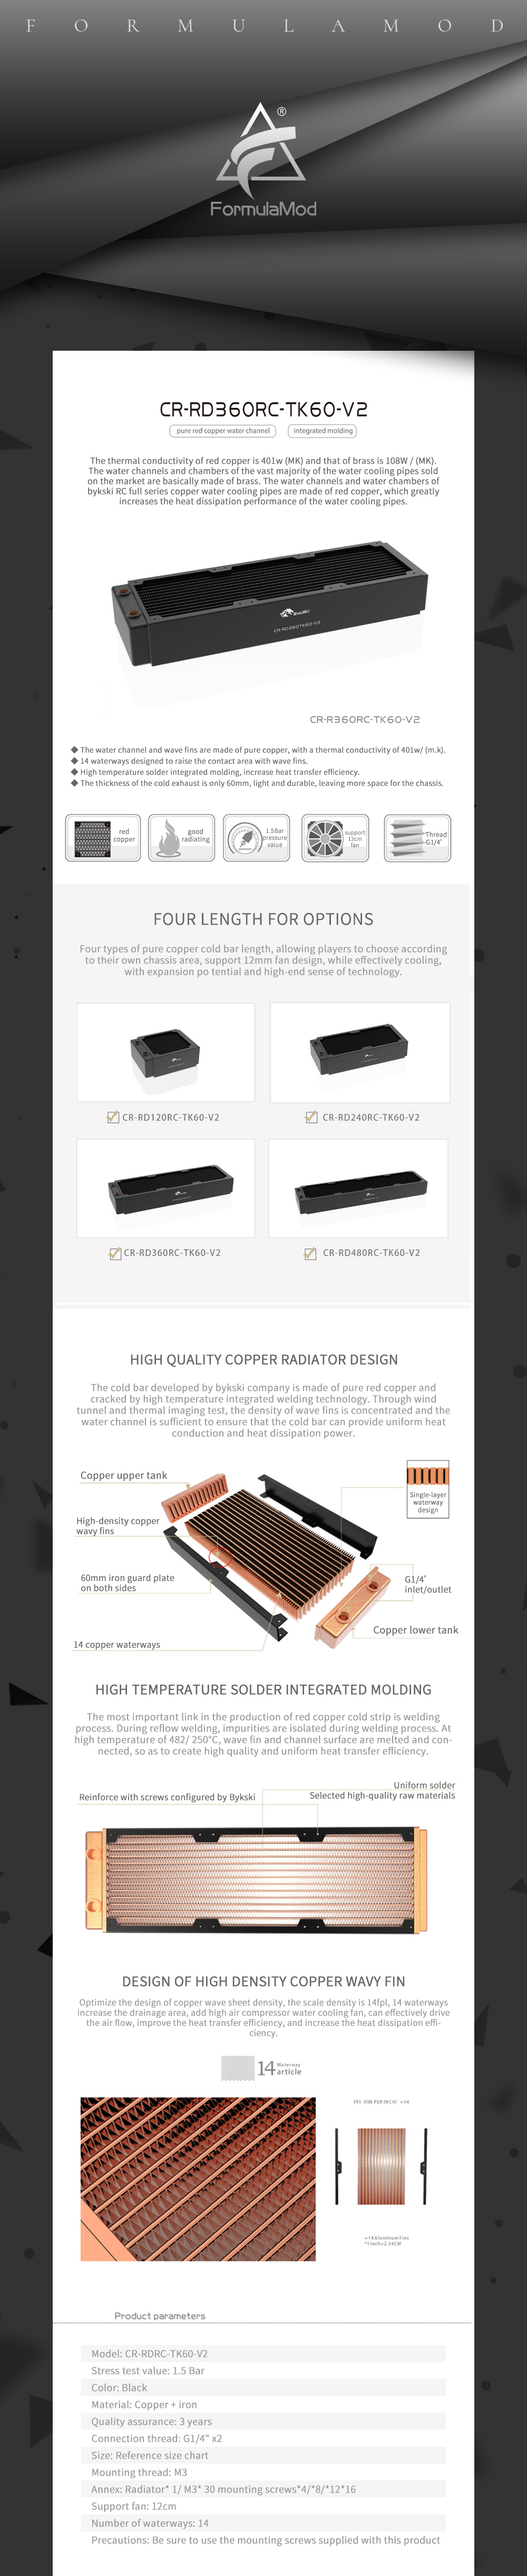 Bykski 360mm Copper Radiator RC Series High-performance Heat Dissipation 60mm Thickness for 12cm Fan Cooler, CR-RD360RC-TK60-V2